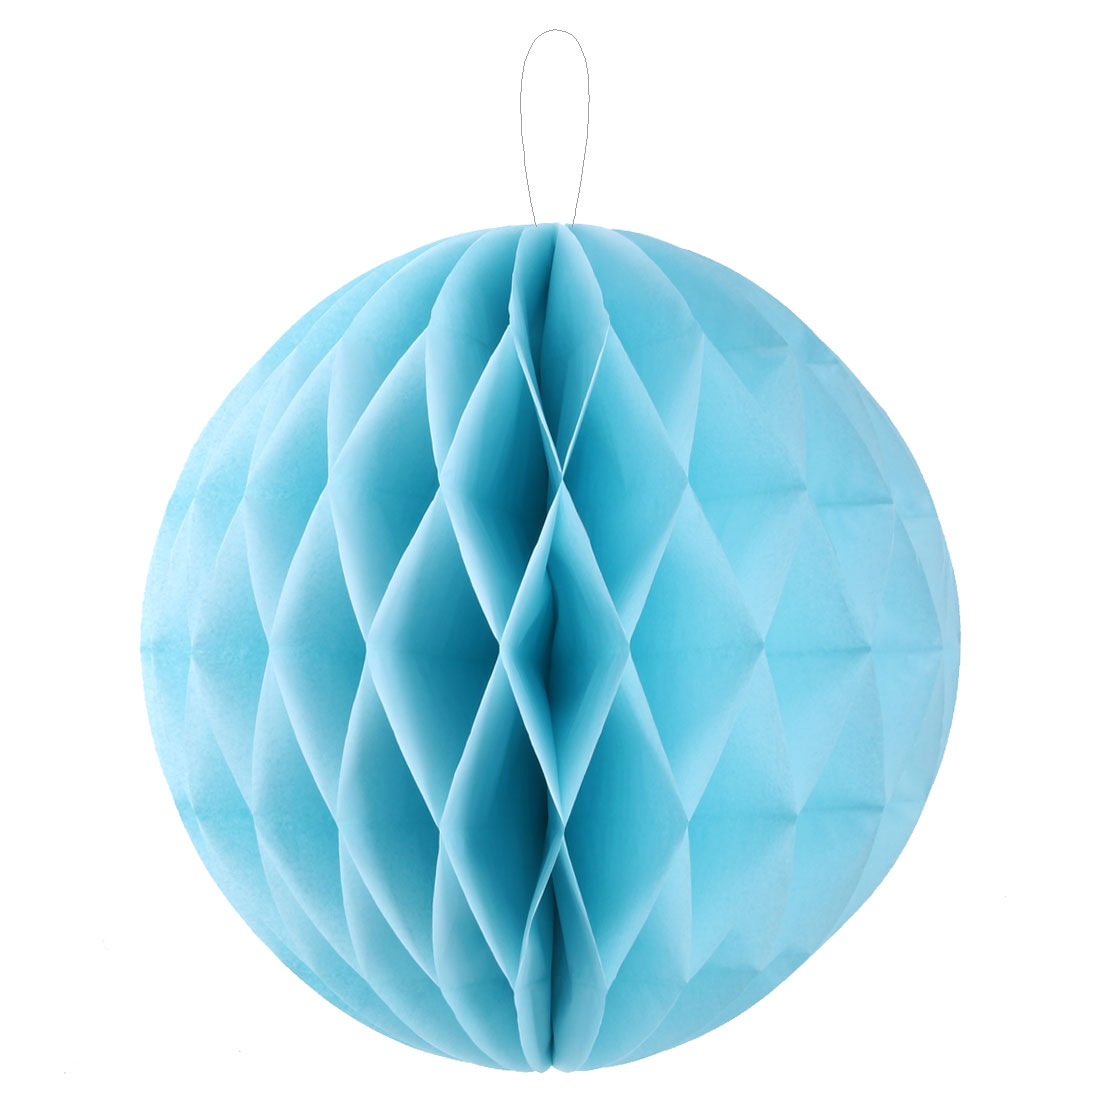 Wedding Paper Chinese Style Window Wall Hanging Decor Honeycomb Ball Pale Blue 16 Inch Dia